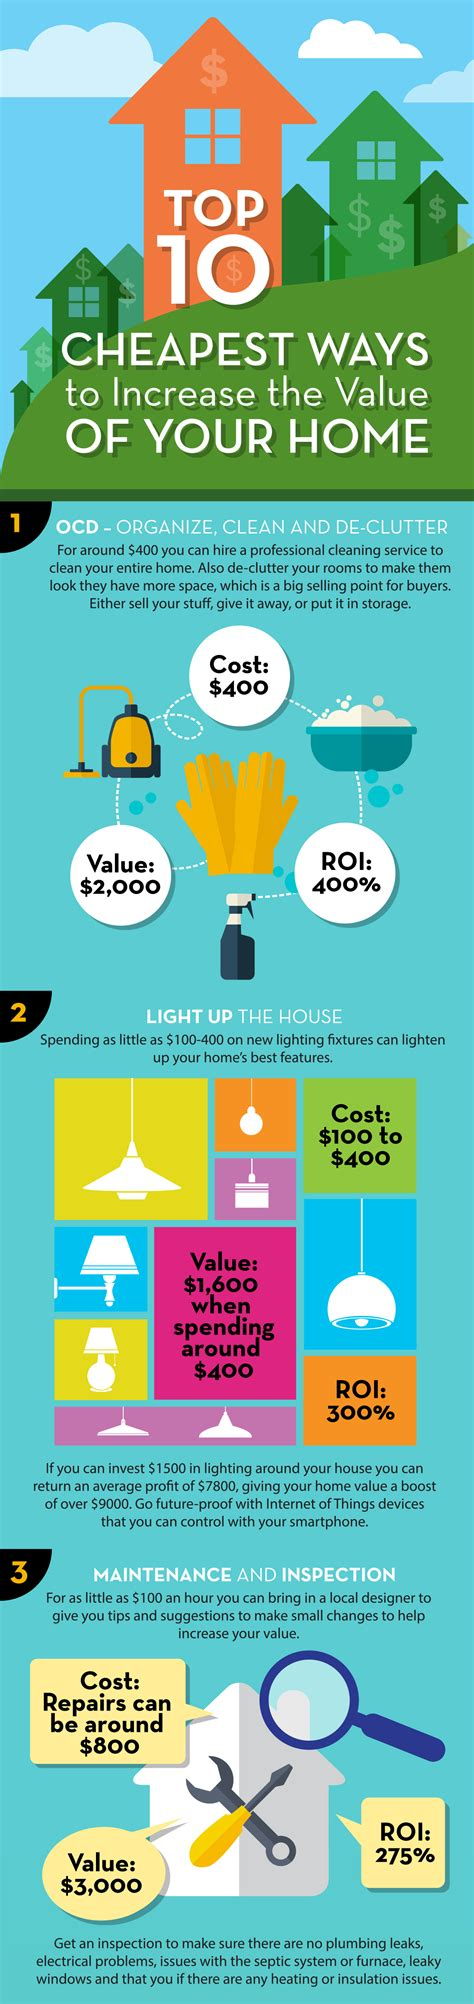 10 ways to increase the value of your home cupolas n more